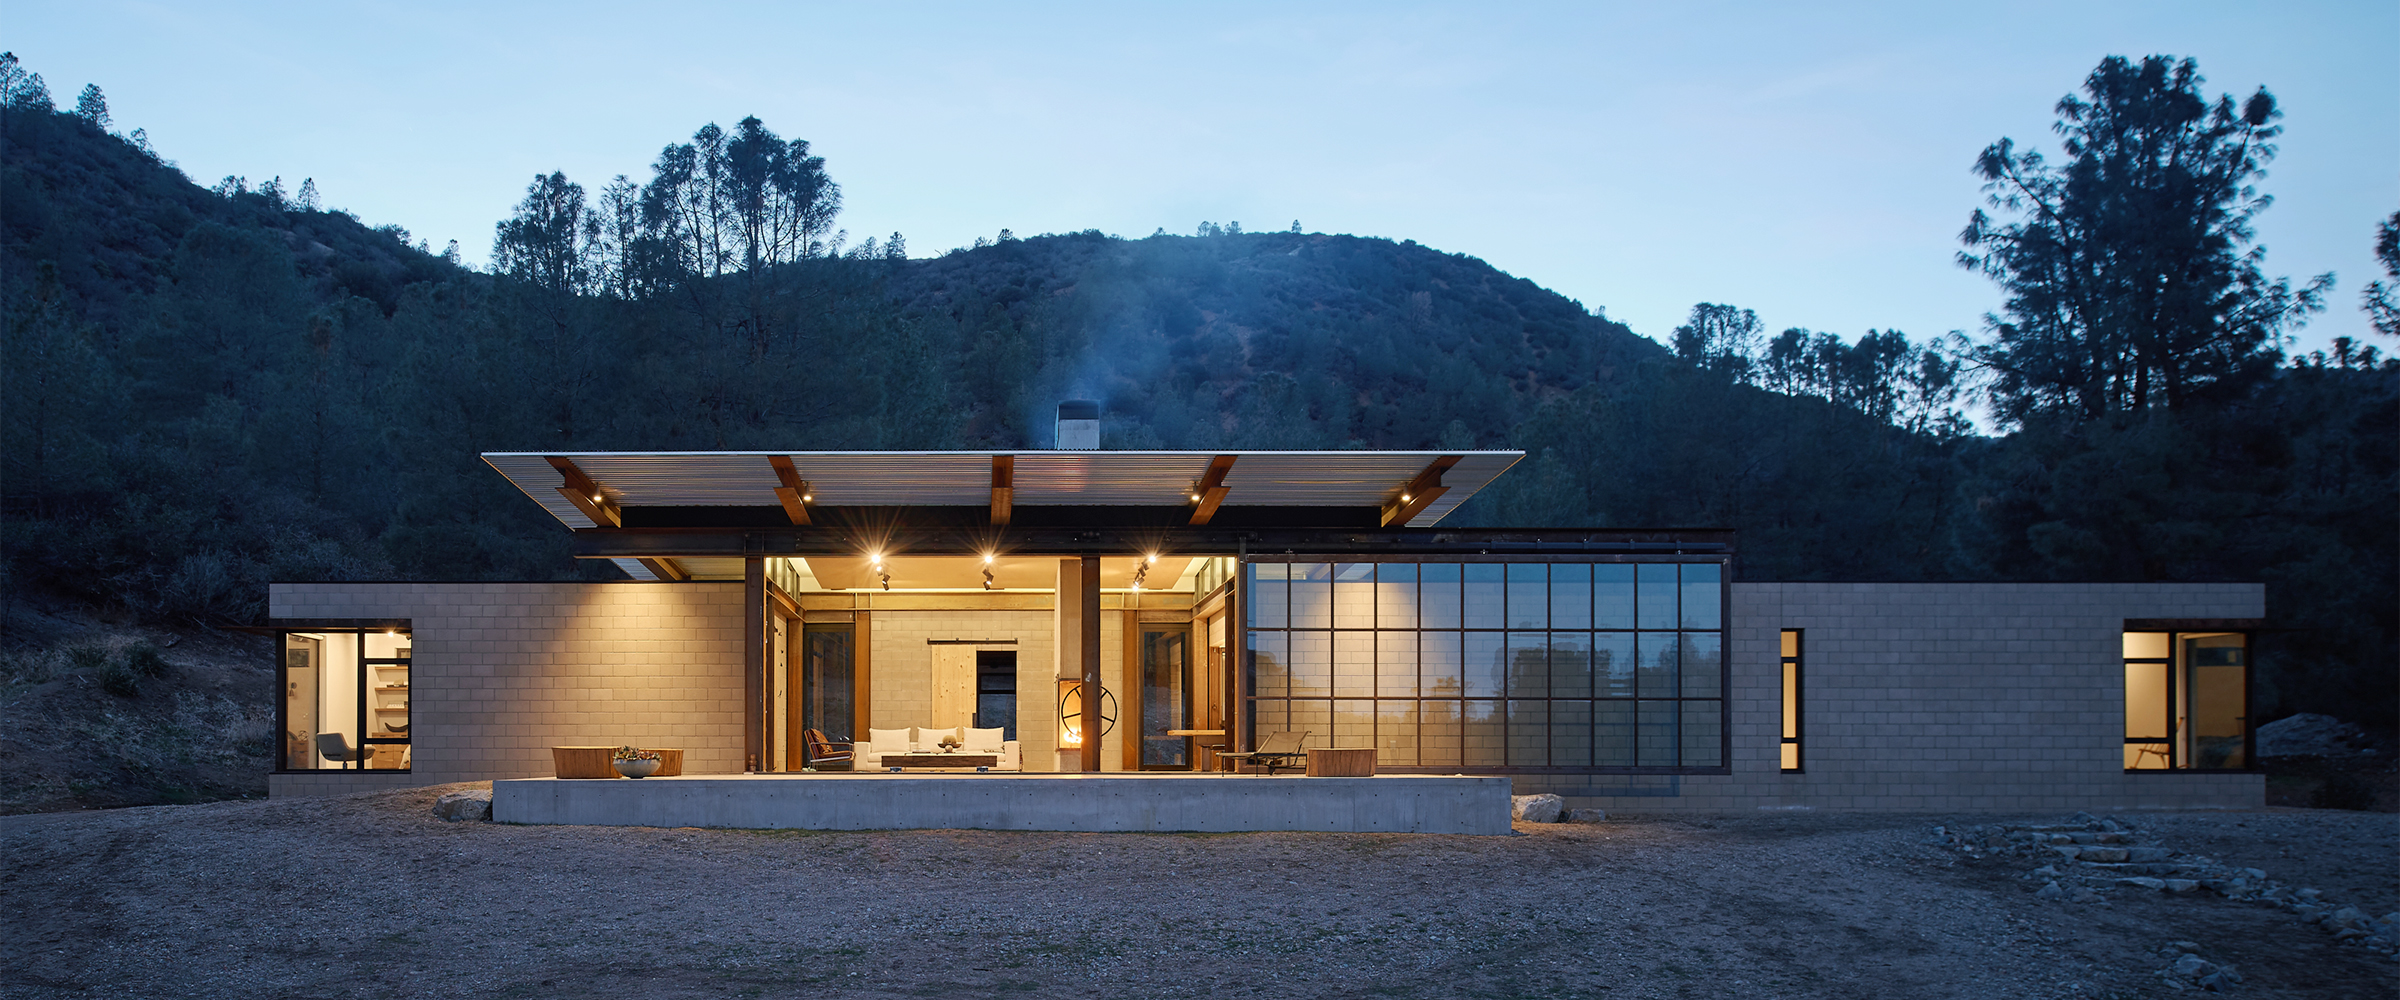 Sawmill Canyon<br><gridTitle>Olson Kundig</gridTitle>